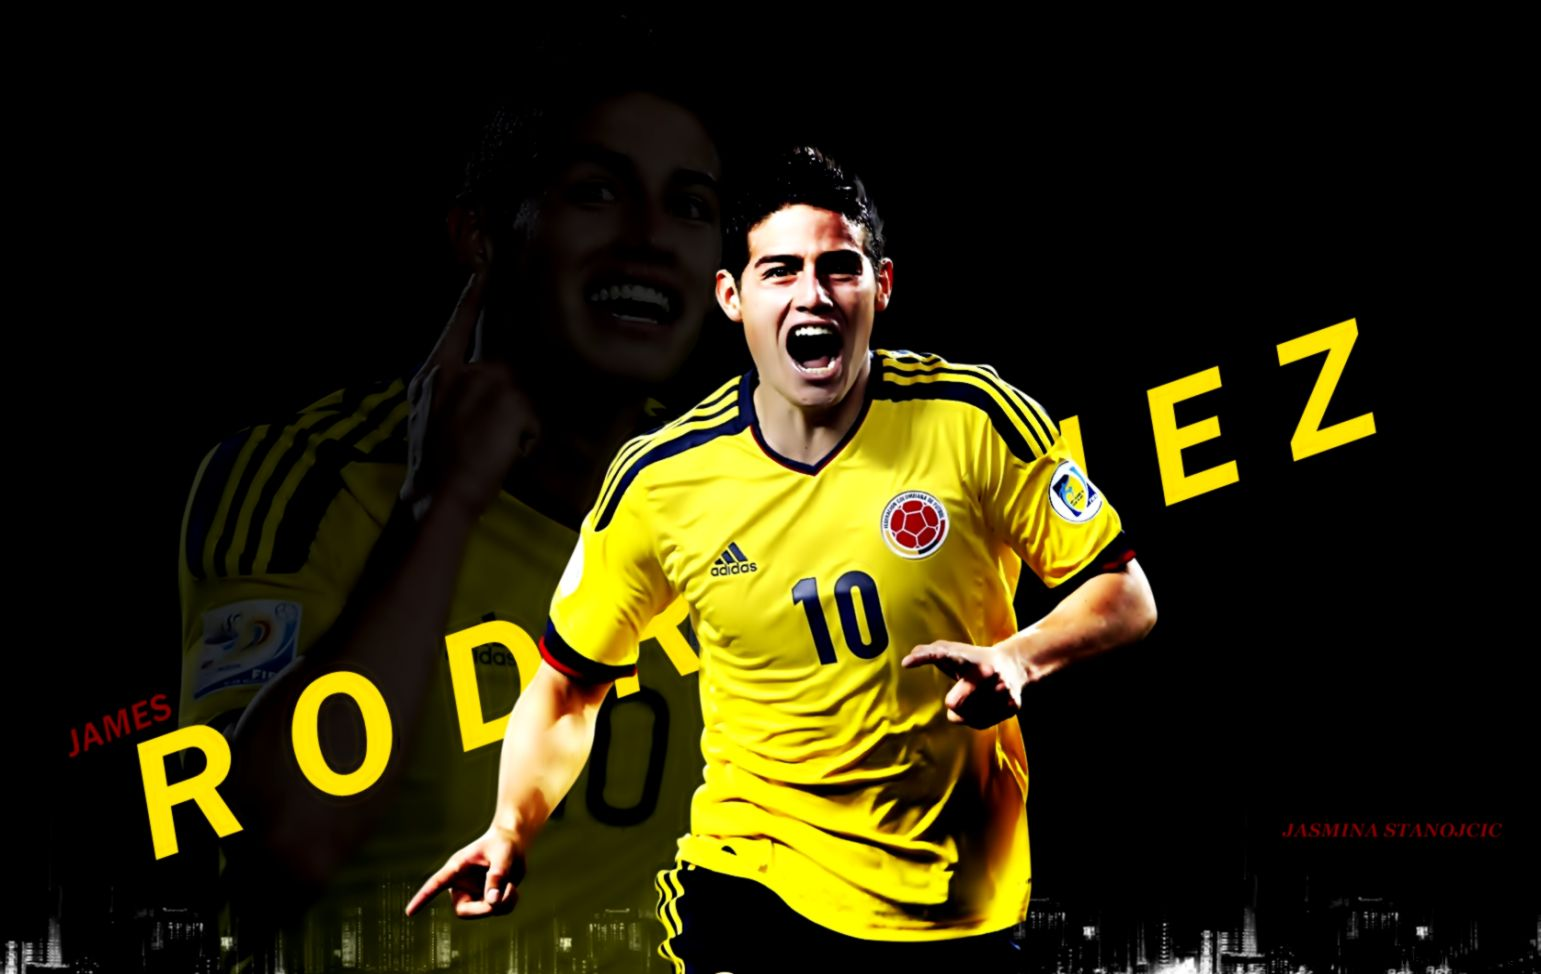 James rodriguez wallpapers image wallpapers - James rodriguez wallpaper hd ...